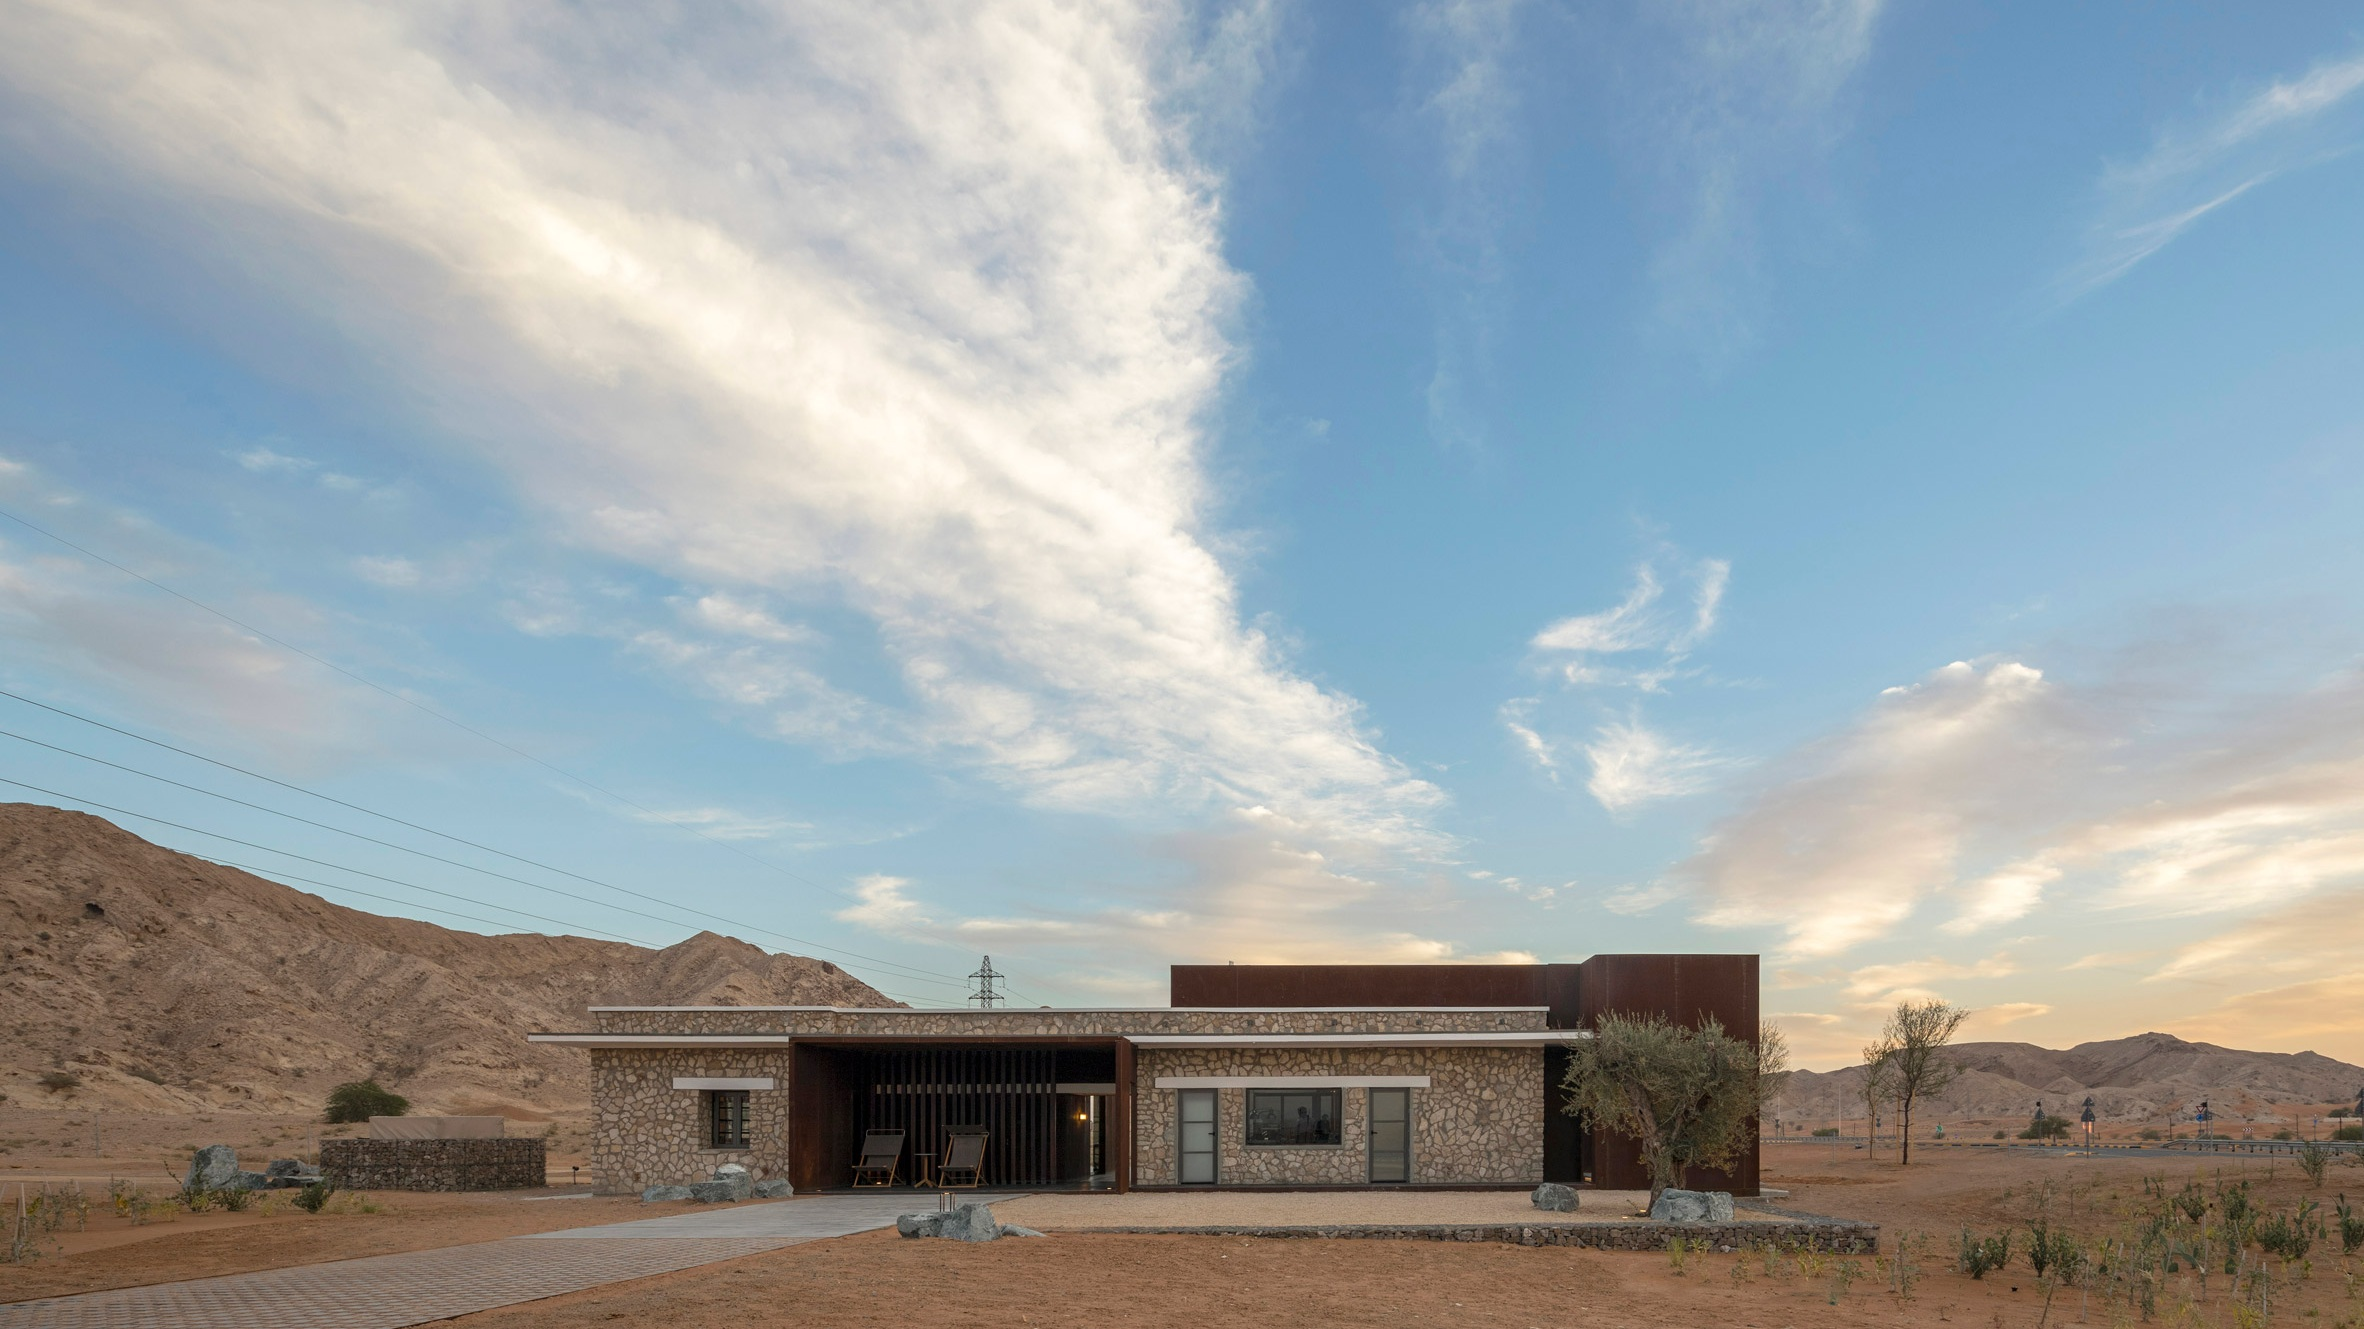 al-faya-lodge-anarchitects-architecture-photography-fernando-guerra-_dezeen_2364_col_14.jpg